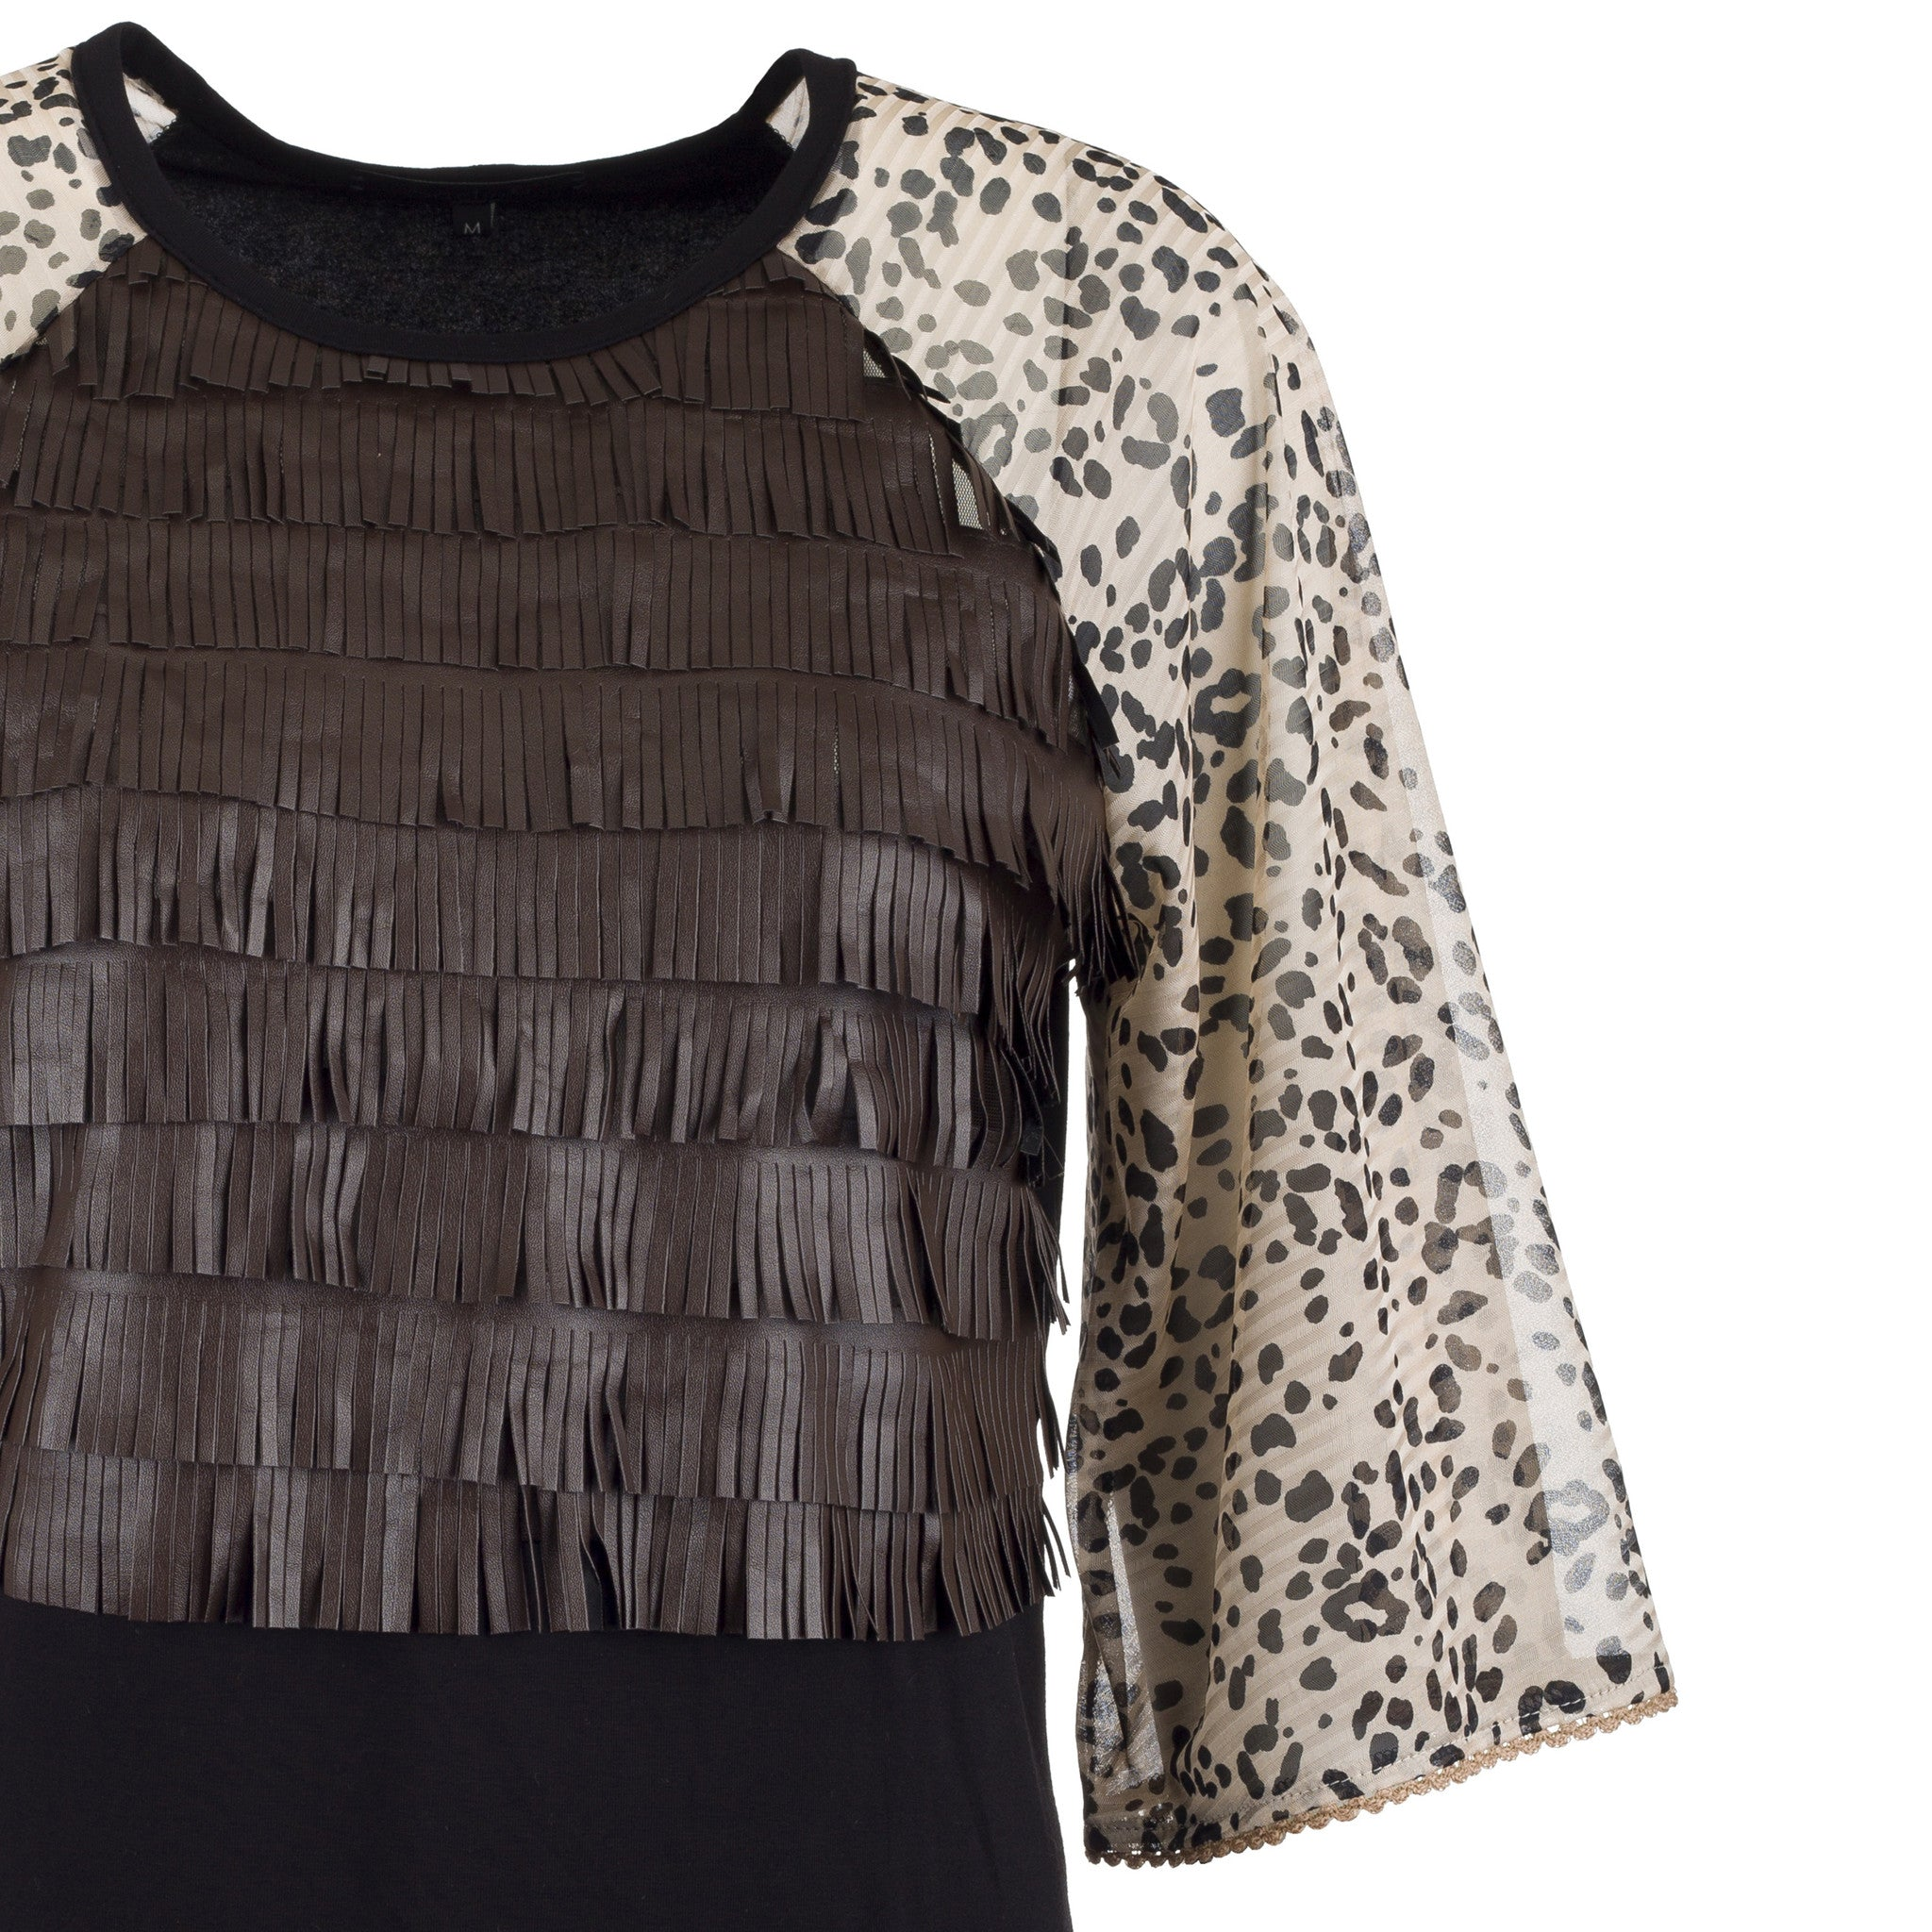 Top with fringe - wide sleeve (made to order)